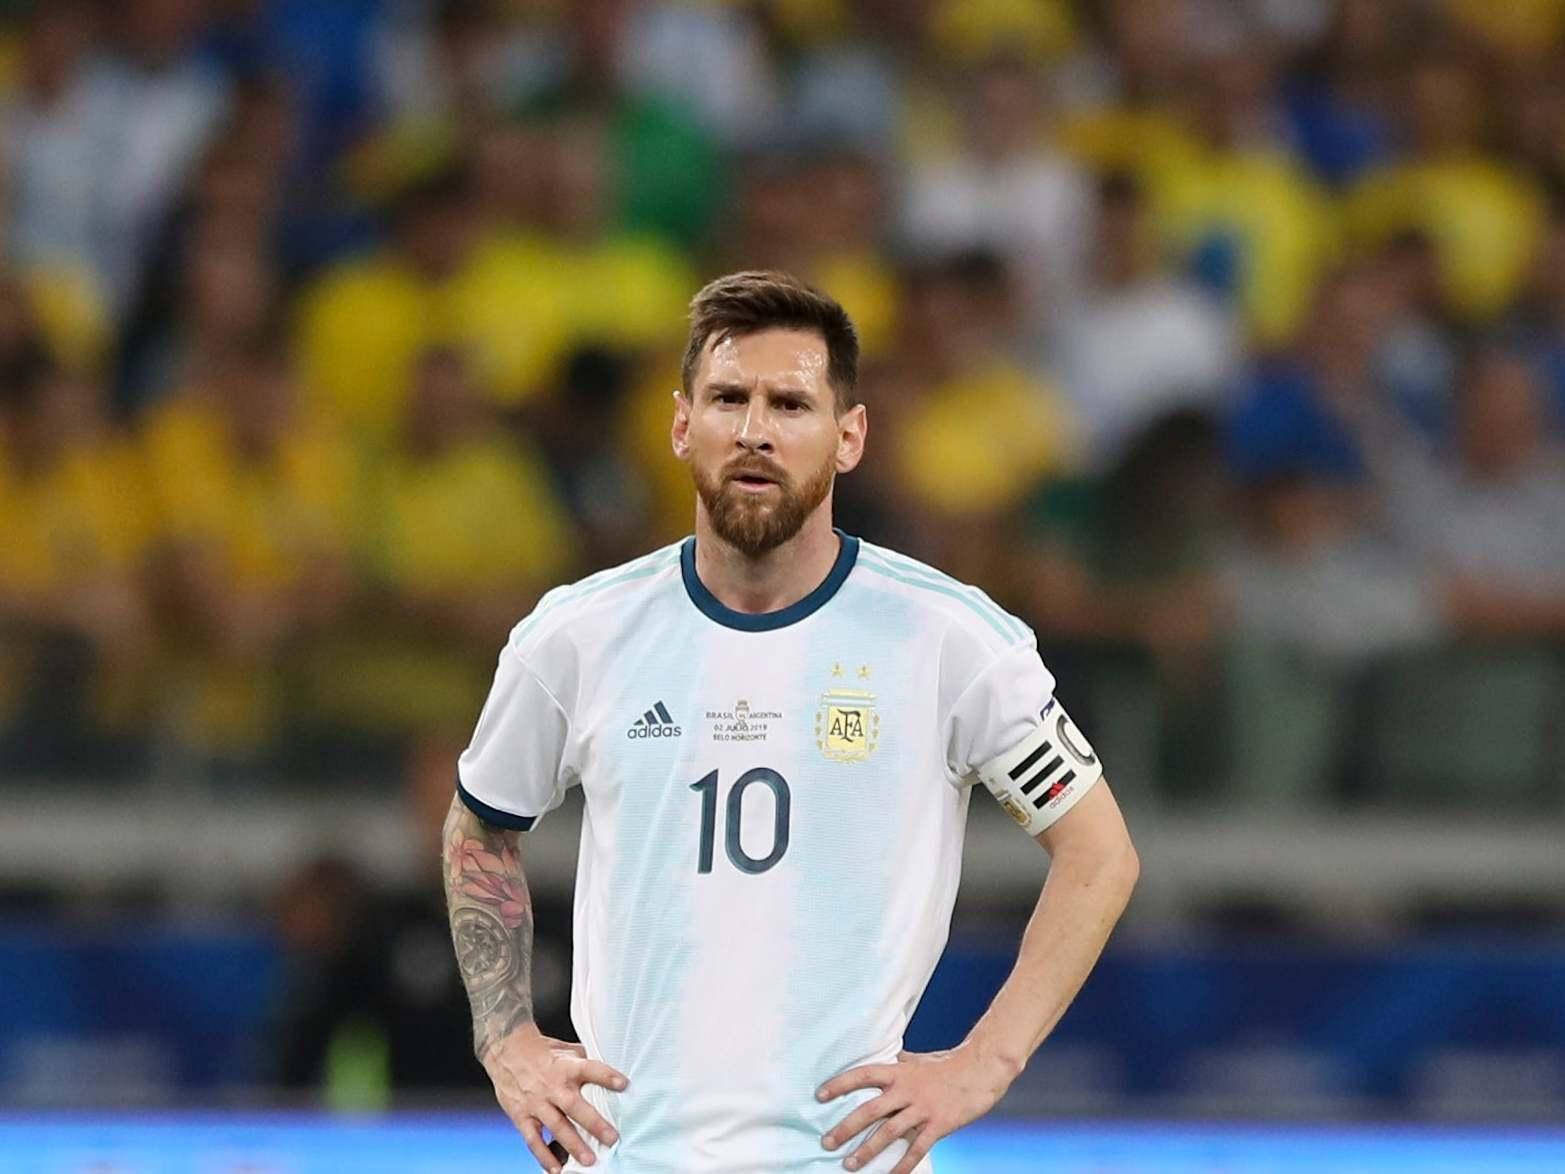 Argentina 2 Chile 1: Messi sees red in tempestuous third-place play-off